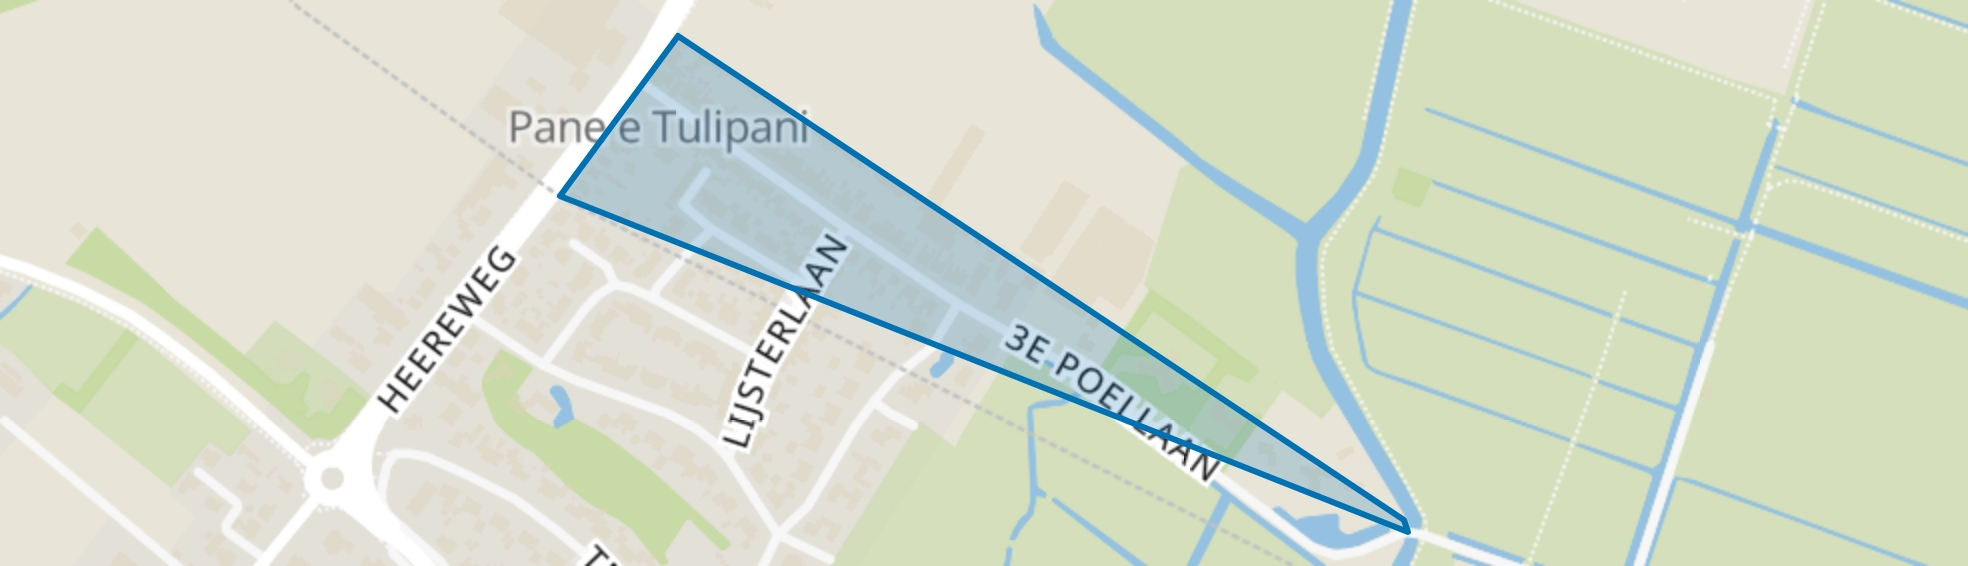 3e Poellaan, Lisse map